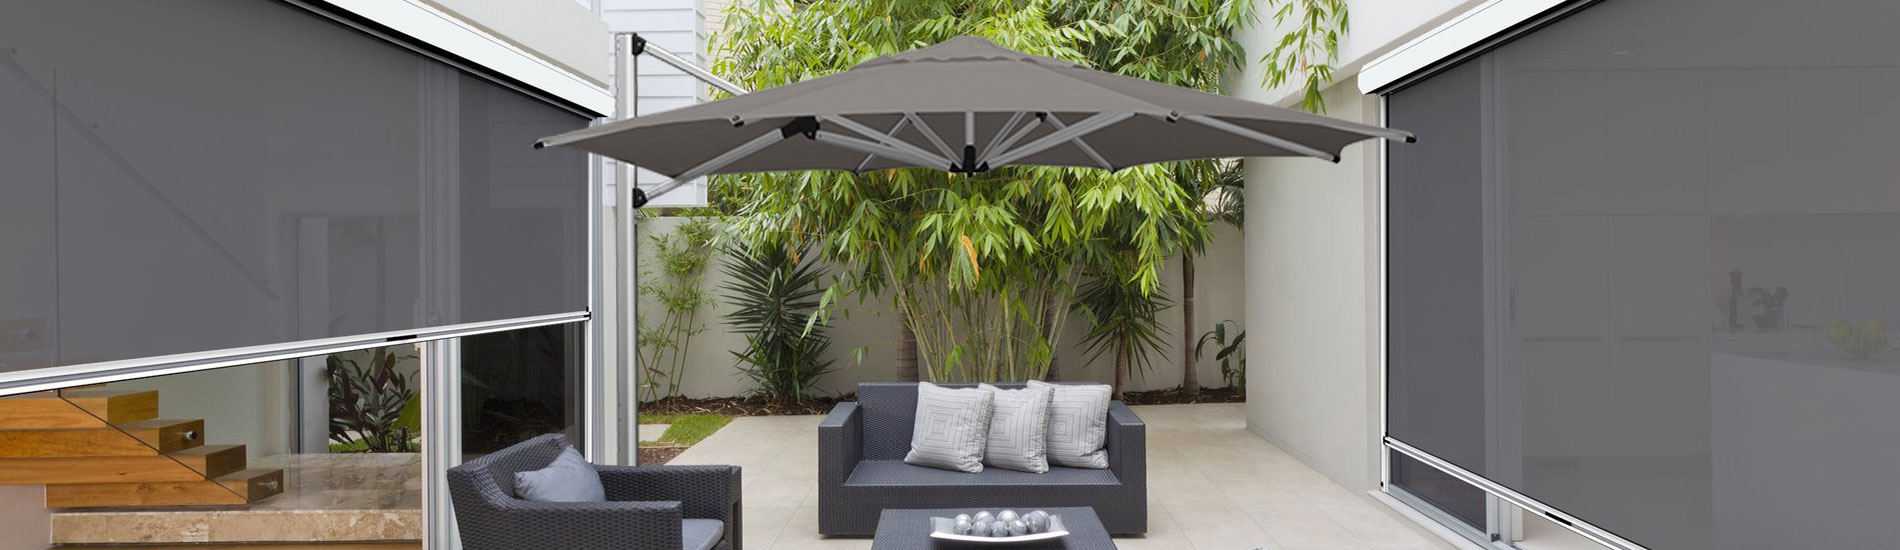 Outdoor Blinds Adelaide | Inviron Blinds Adelaide